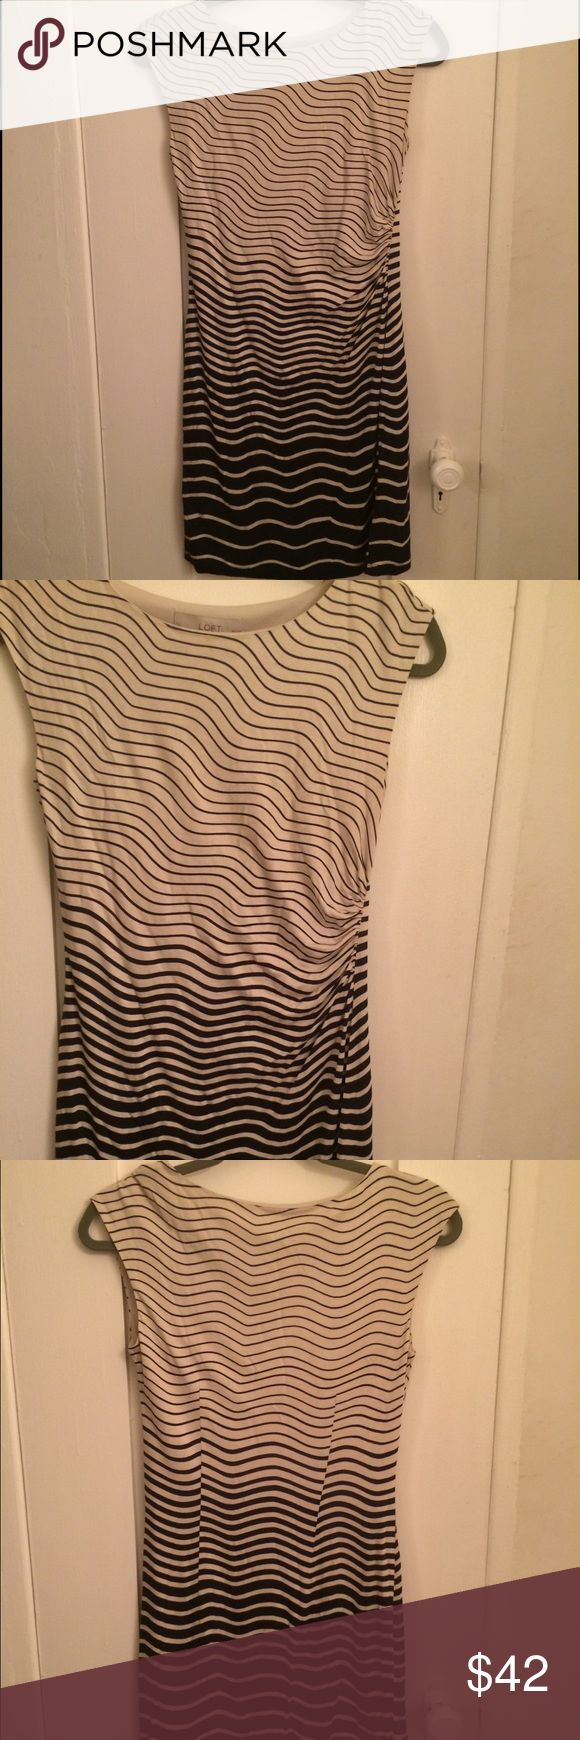 Loft Blue and White Petite XS Dress NWOT very soft and stretchy, fully lined LOFT Dresses Mini